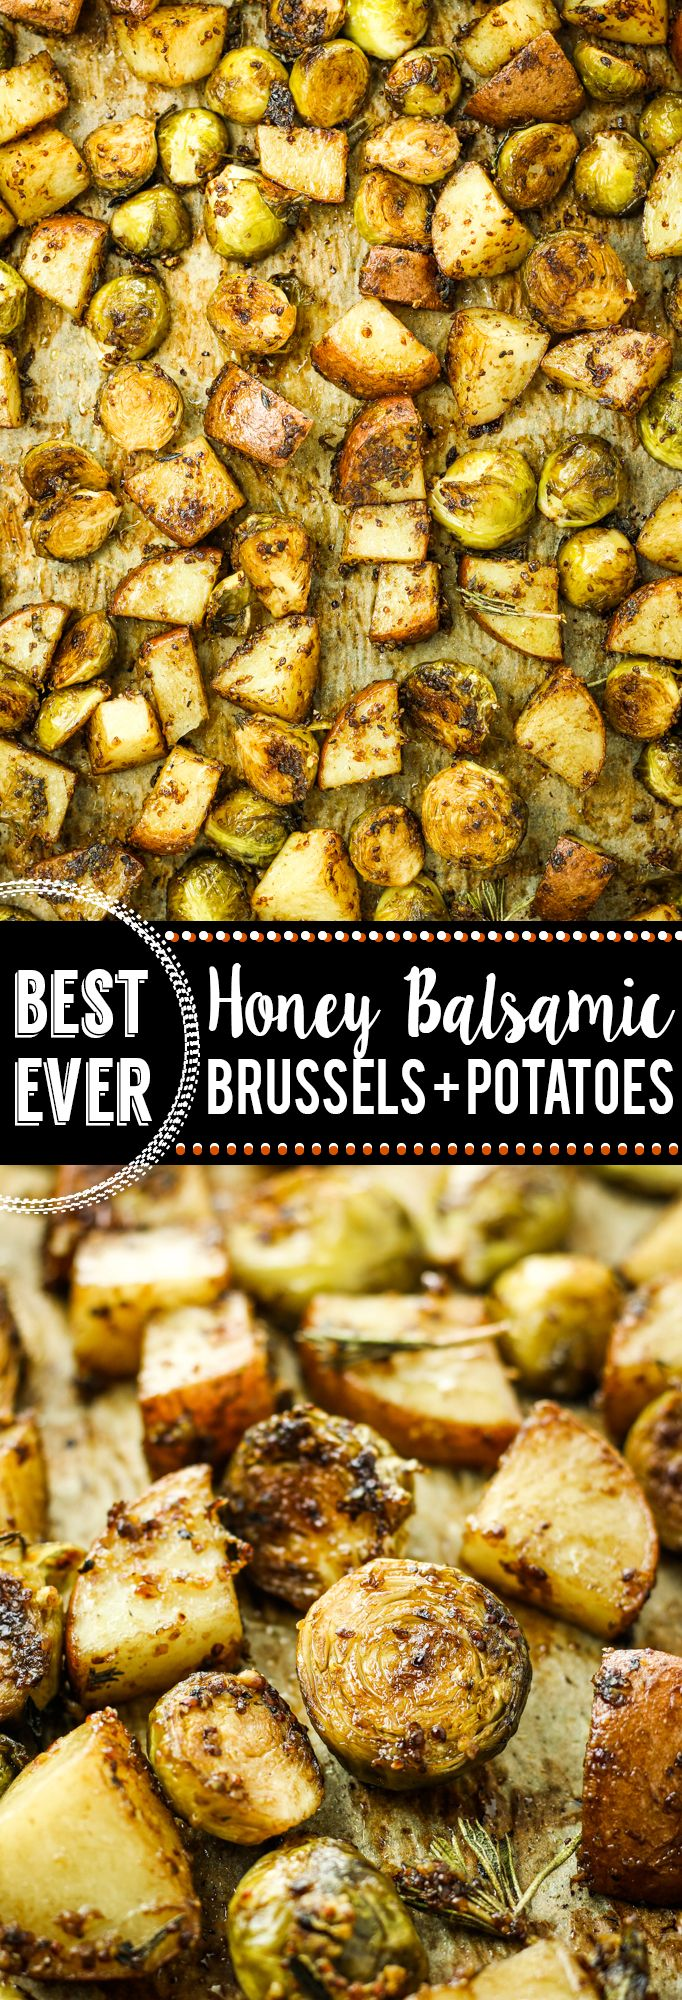 Brussel Sprout Recipes Honey Maple Syrup